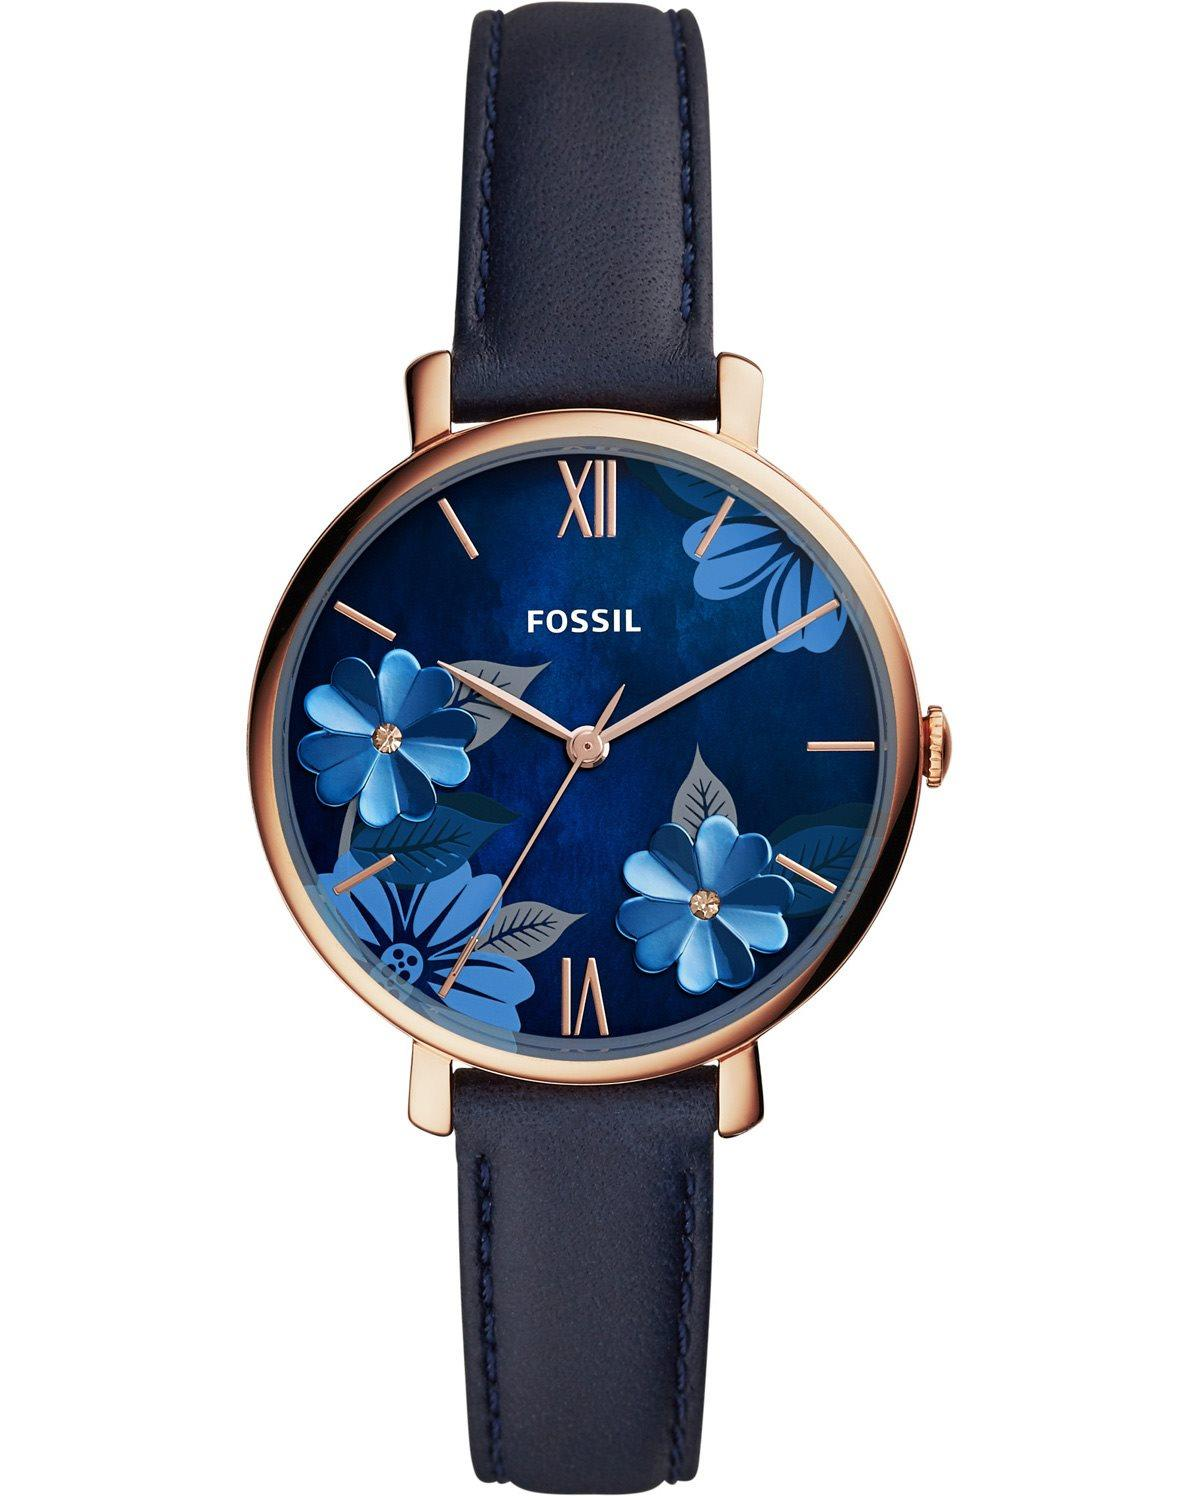 FOSSIL Jacqueline - ES4673, Rose Gold case with Blue Leather Strap